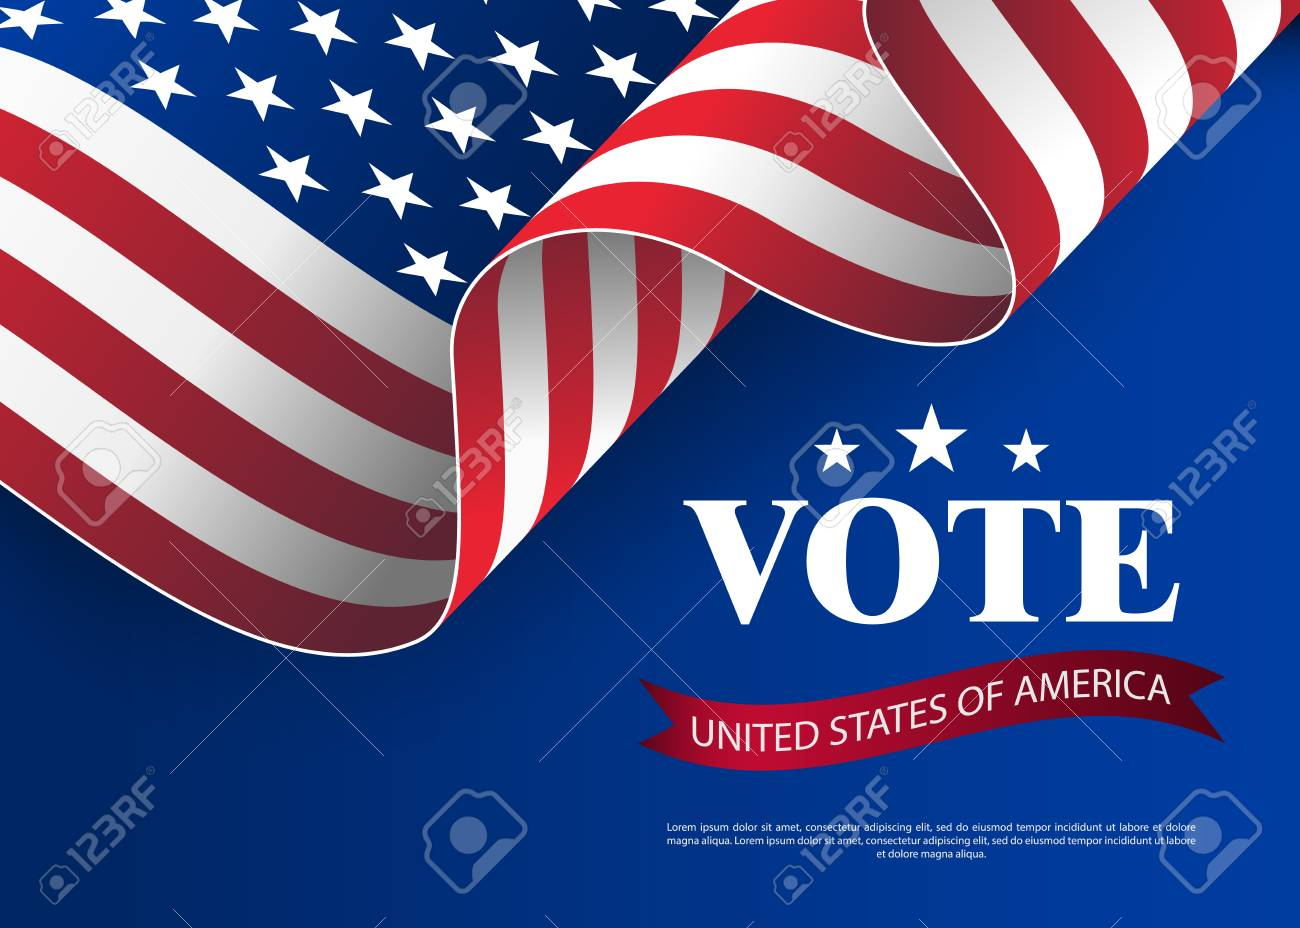 Elections To Us Senate In 2018 Template For Us Elections Presidential Royalty Free Cliparts Vectors And Stock Illustration Image 109882705